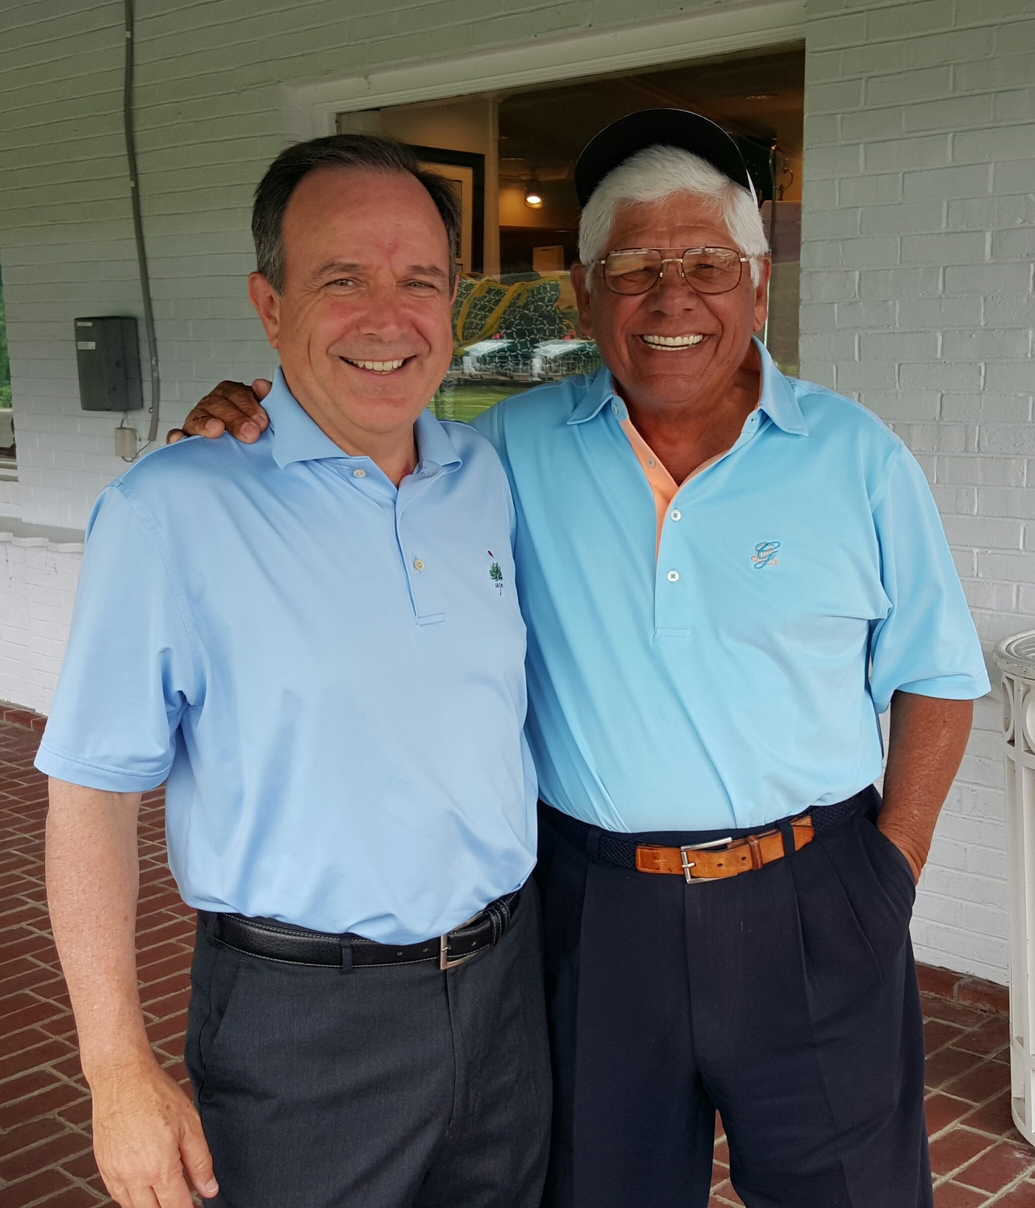 Lee Trevino & Gordon Dalgleish at The Greenbrier